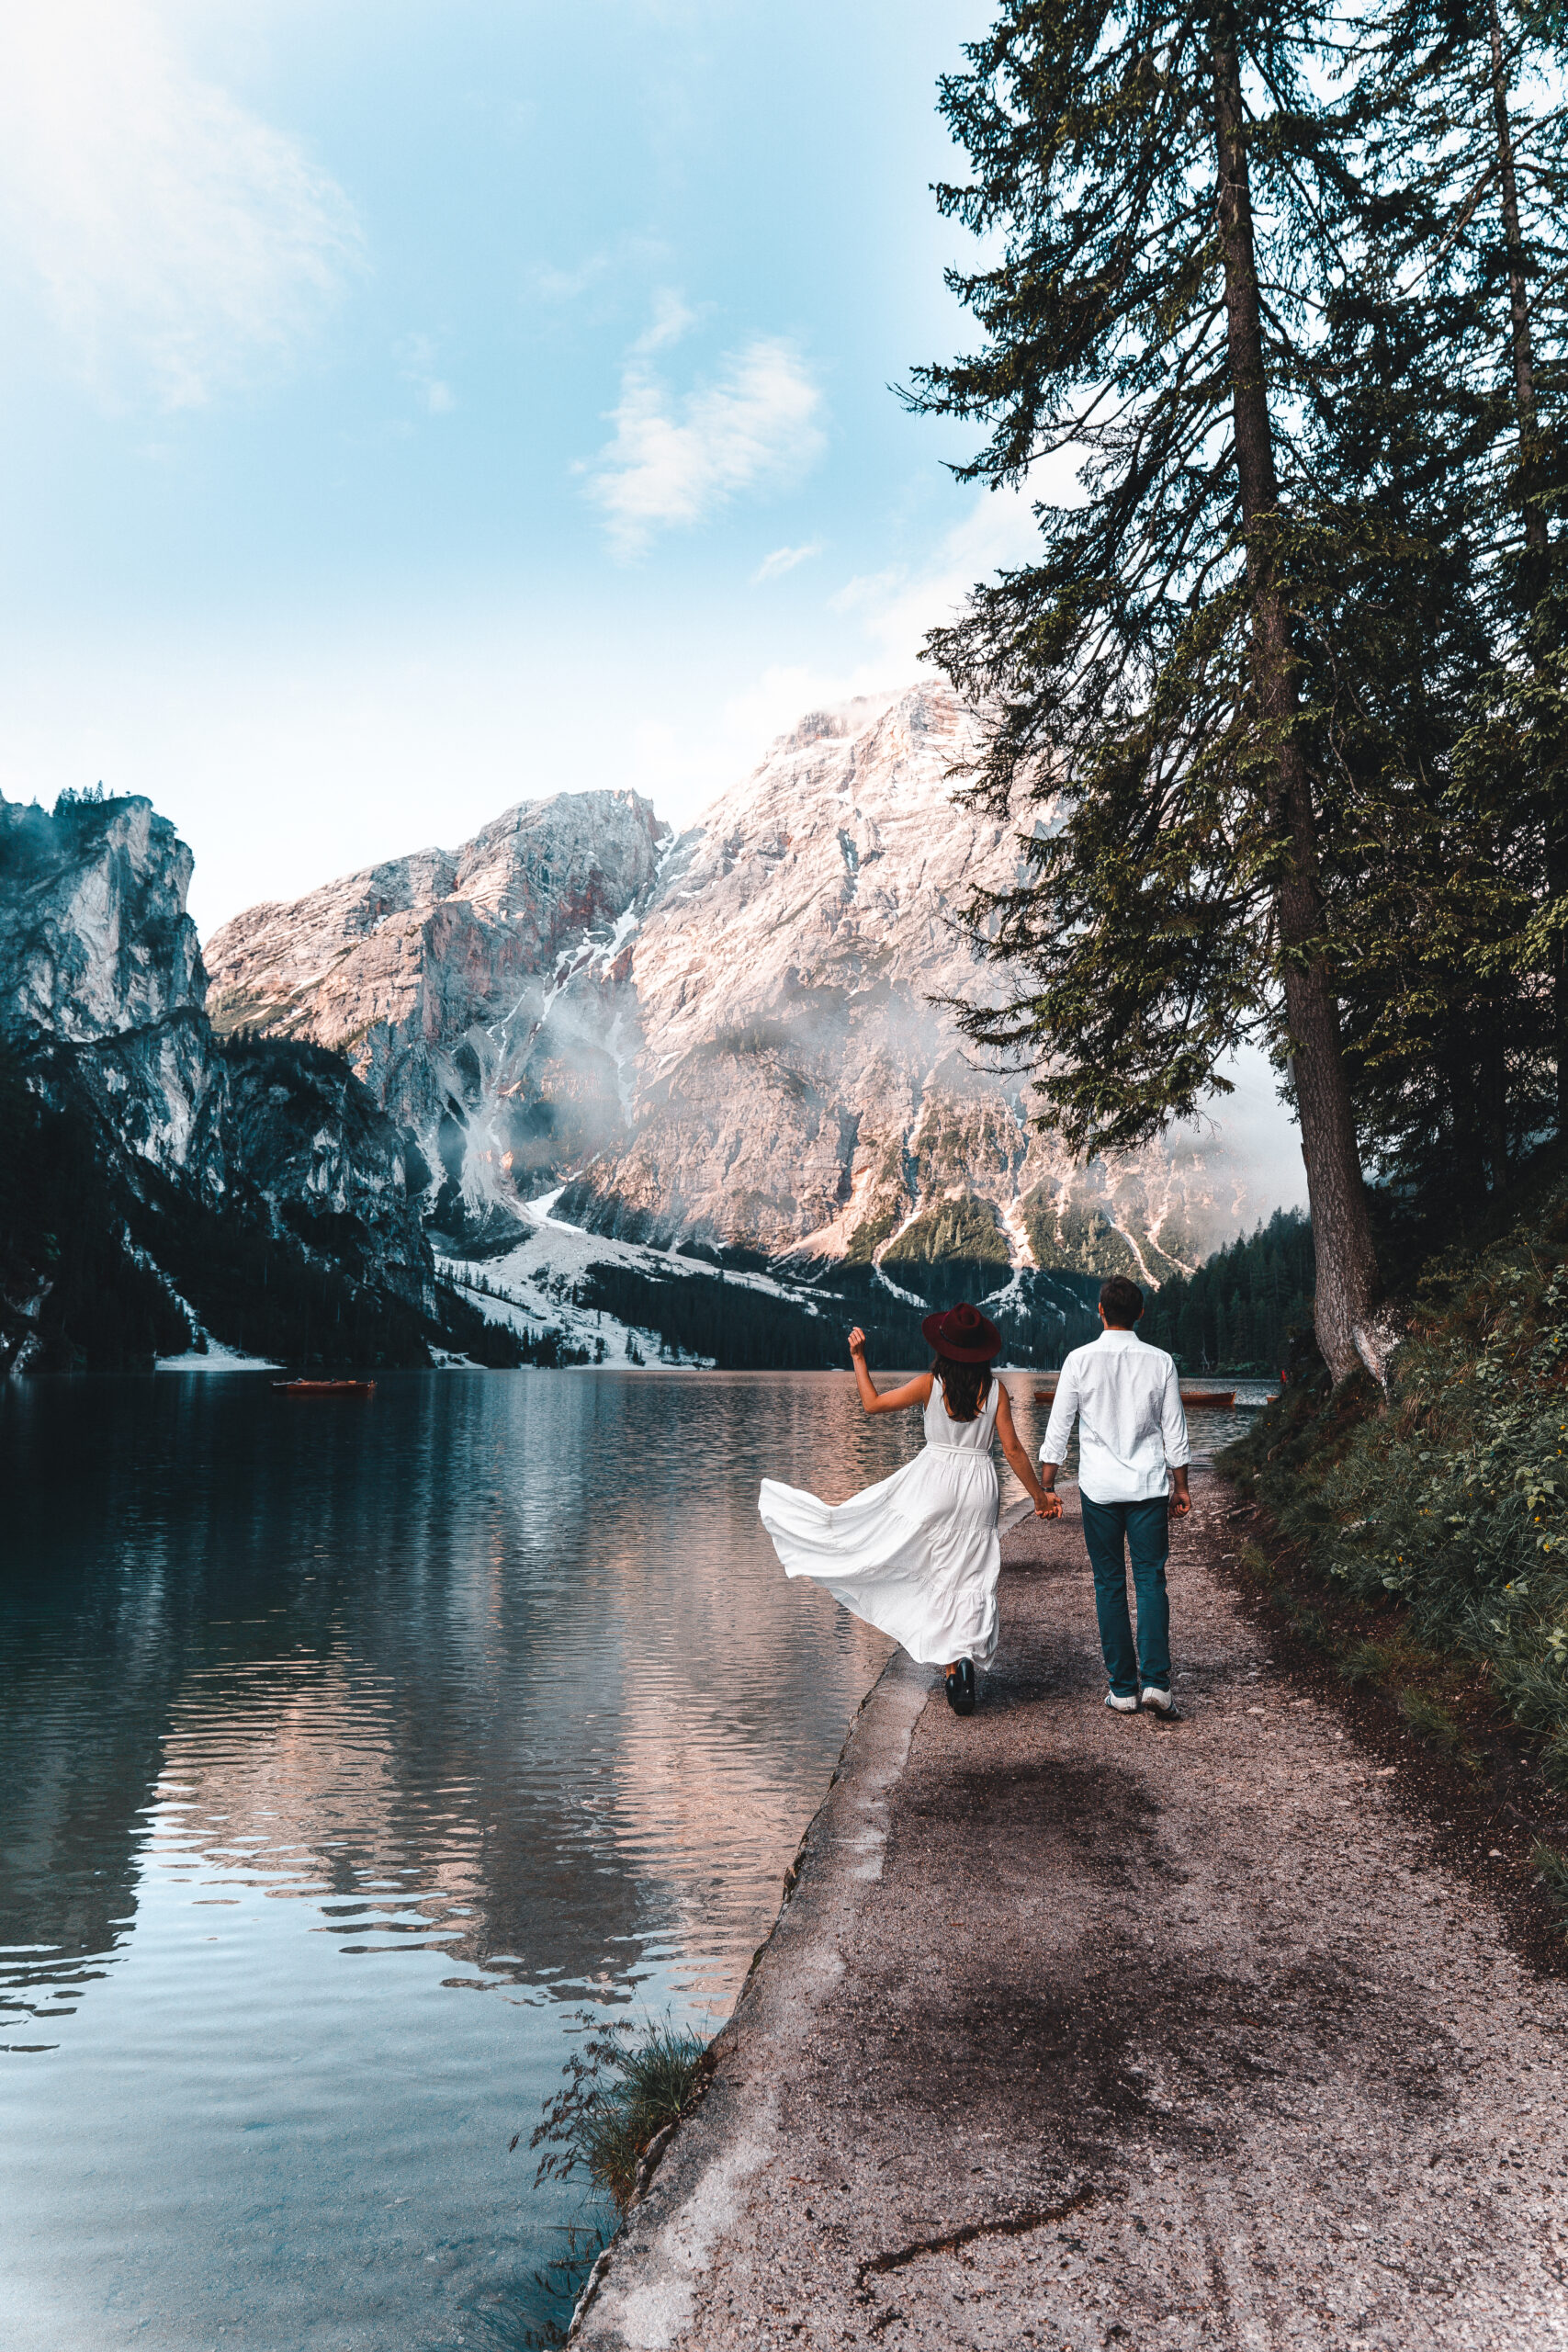 A complete guide on how to visit Lago di Braies in Italy